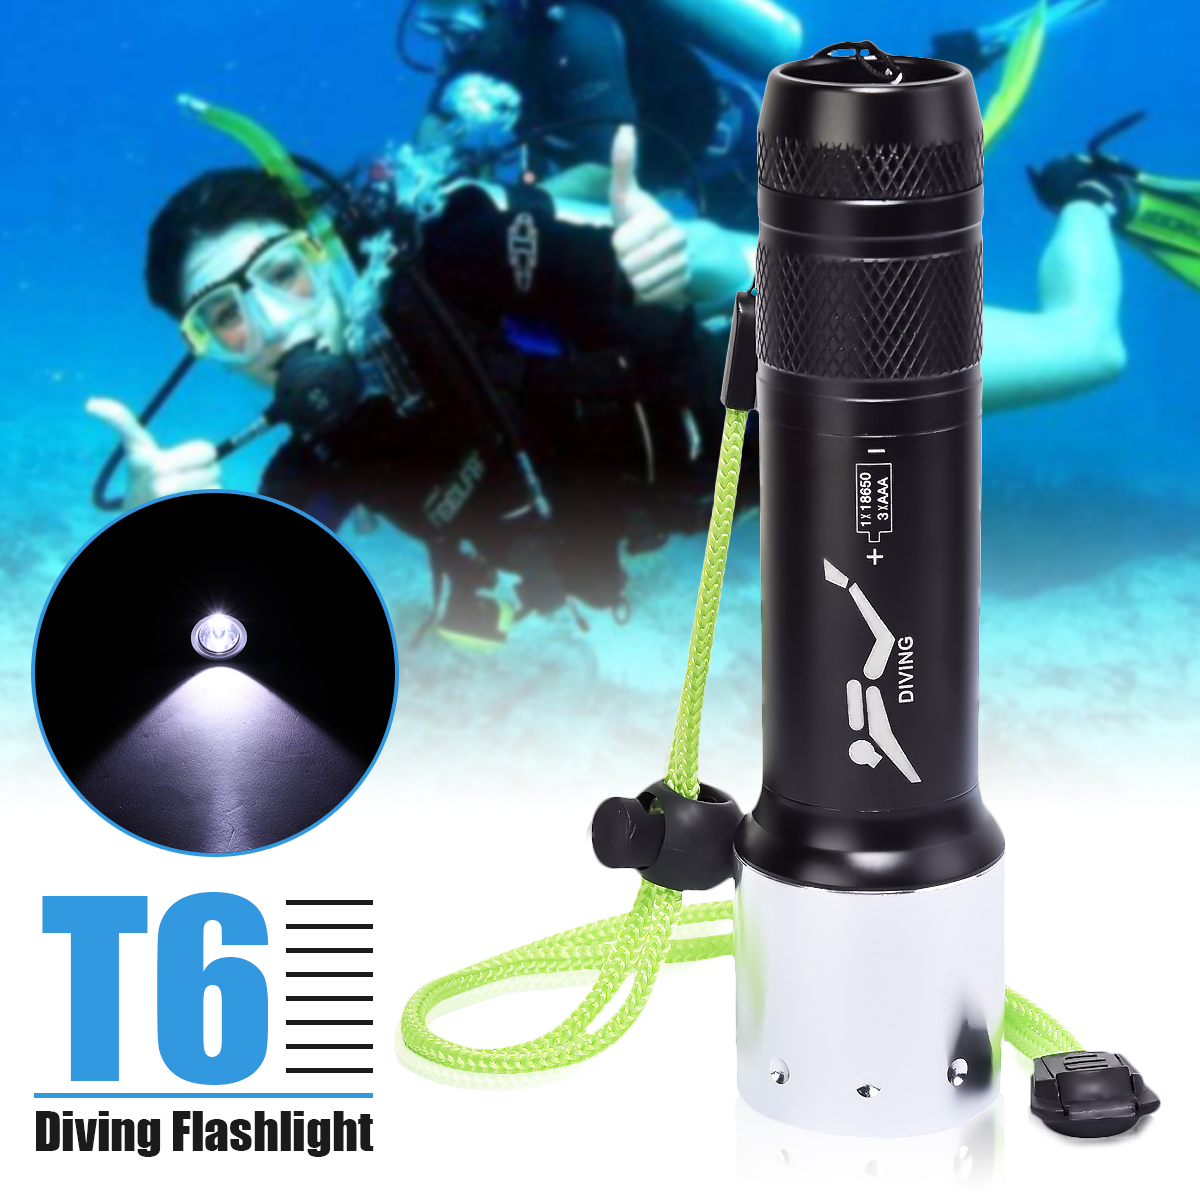 Smuxi 1pcs T6 LED Waterproof Diving Flashlight 3 Modes Super Bright Portable Torch Used 18650/AAA Battery Outdoor Camping Light